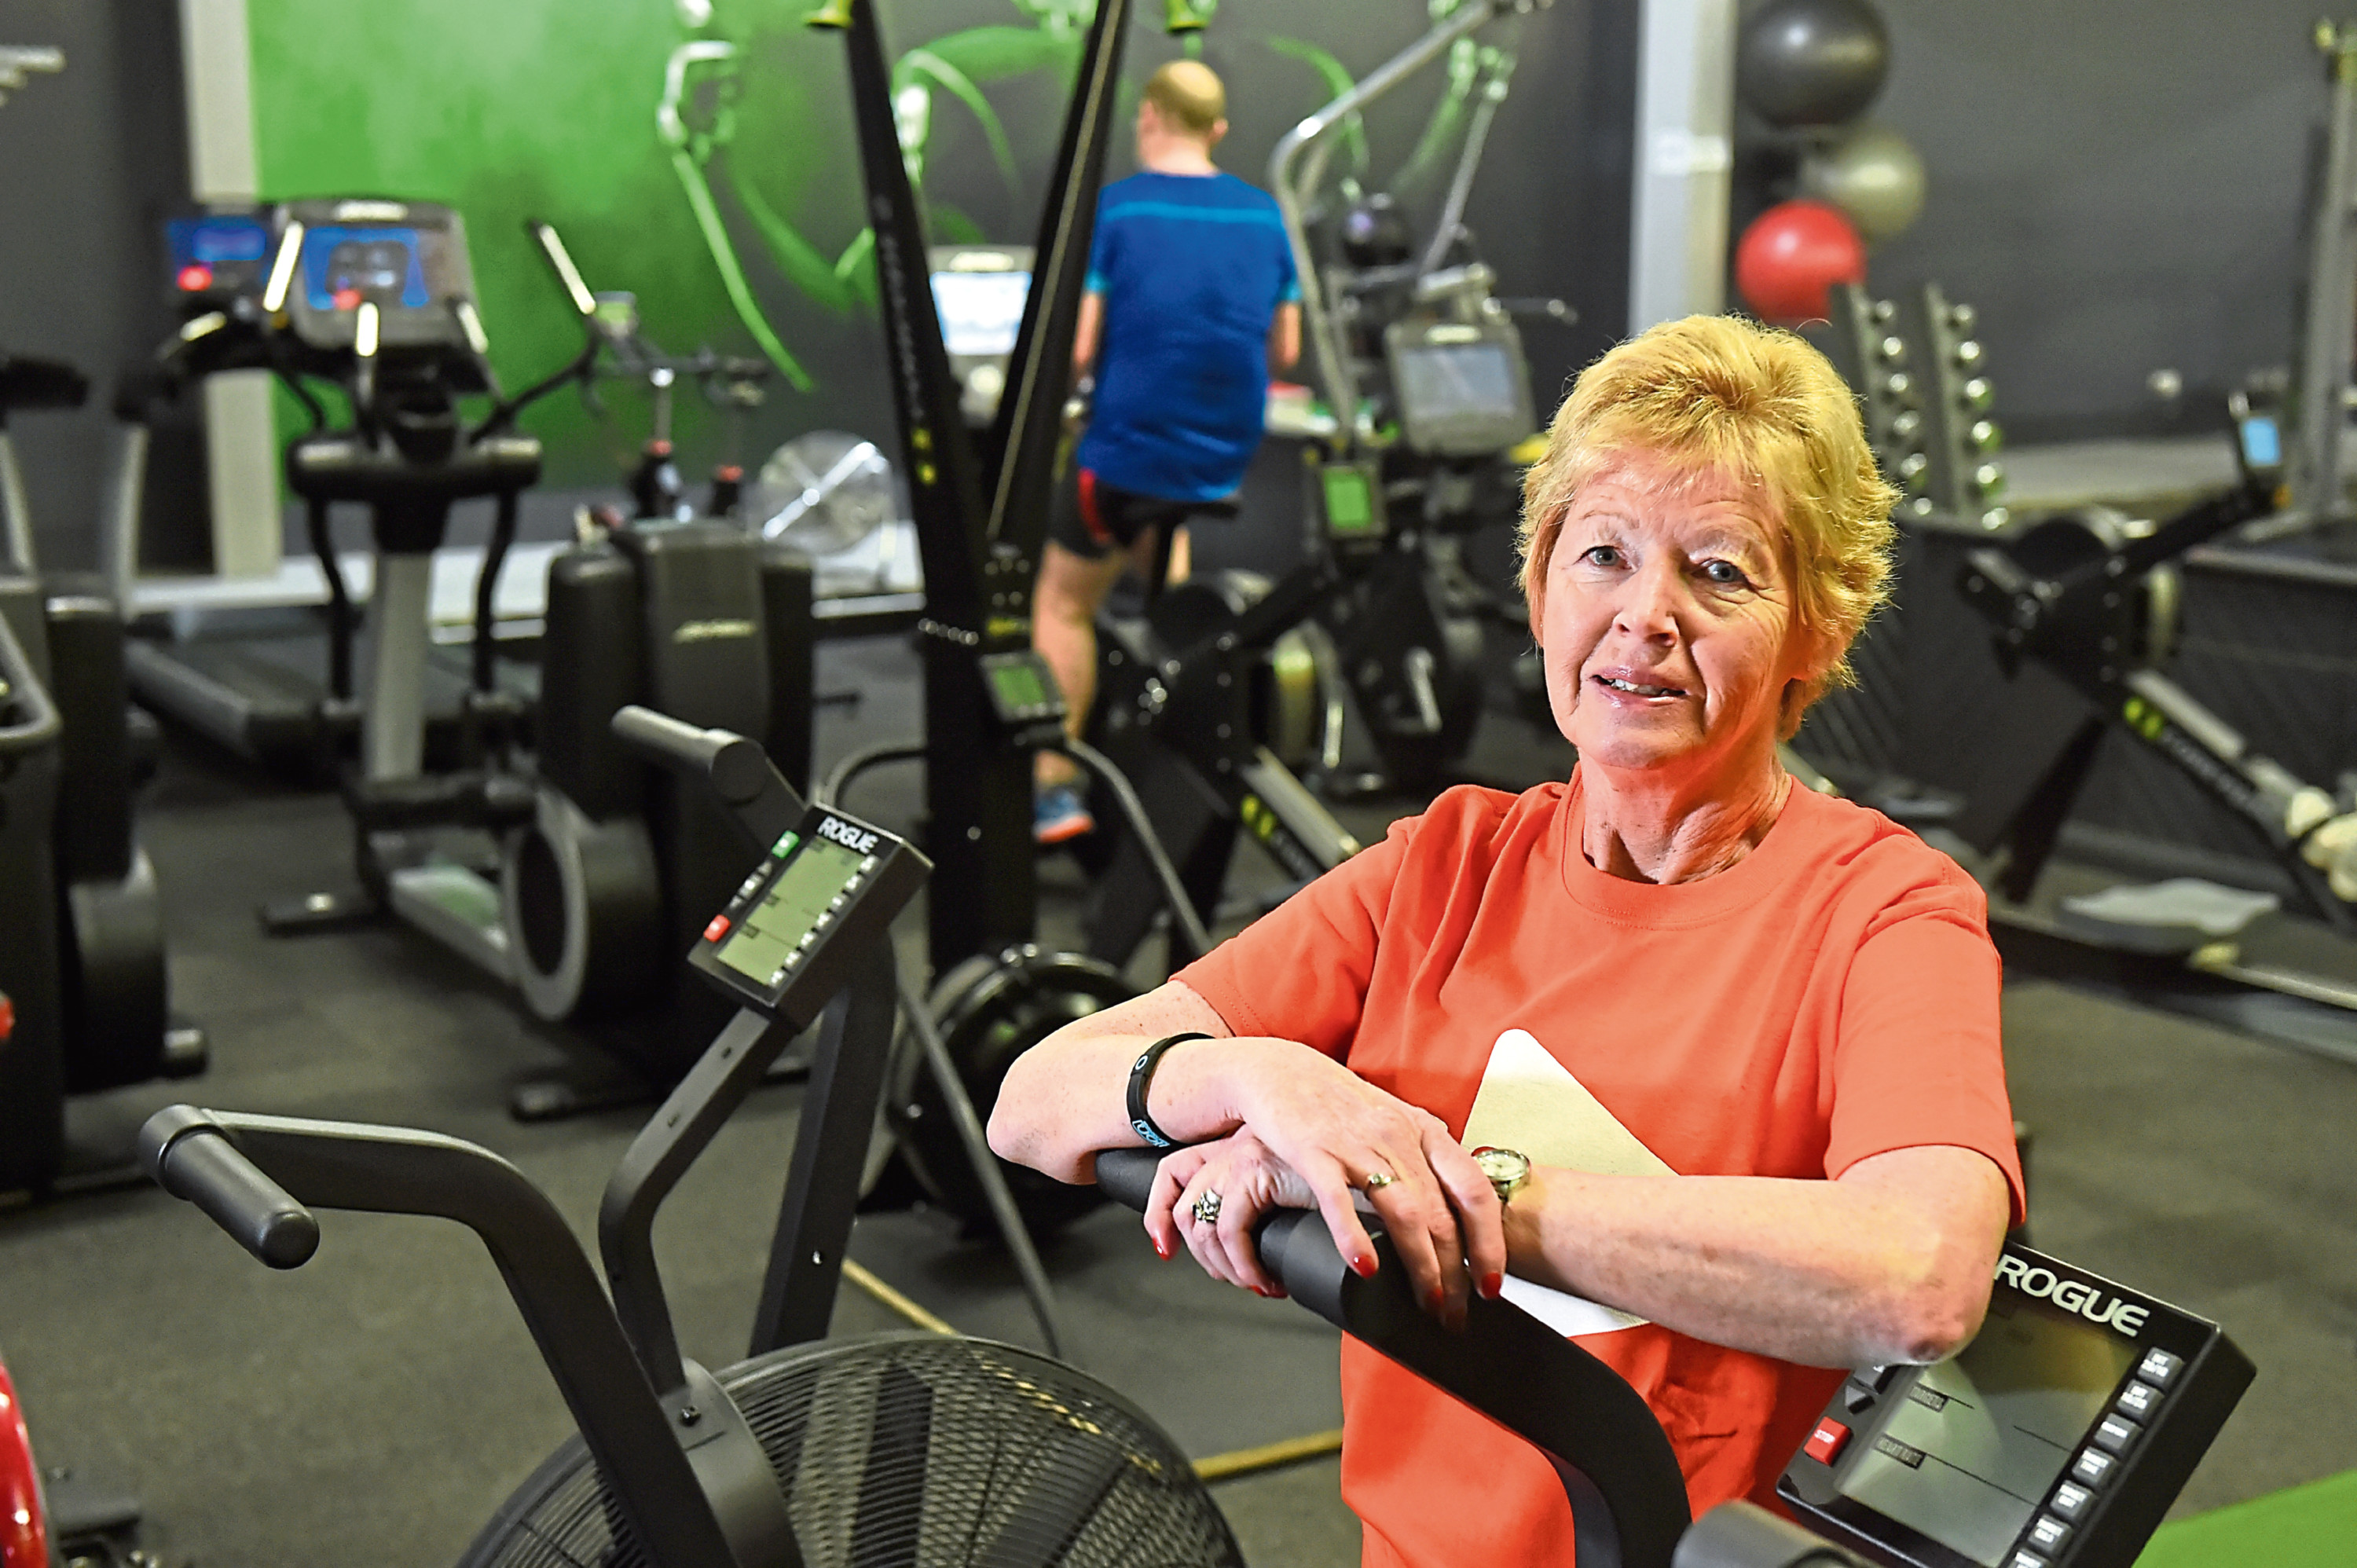 Fiona Halliday was determined to get back to fitness and joined The Unit in Banchory